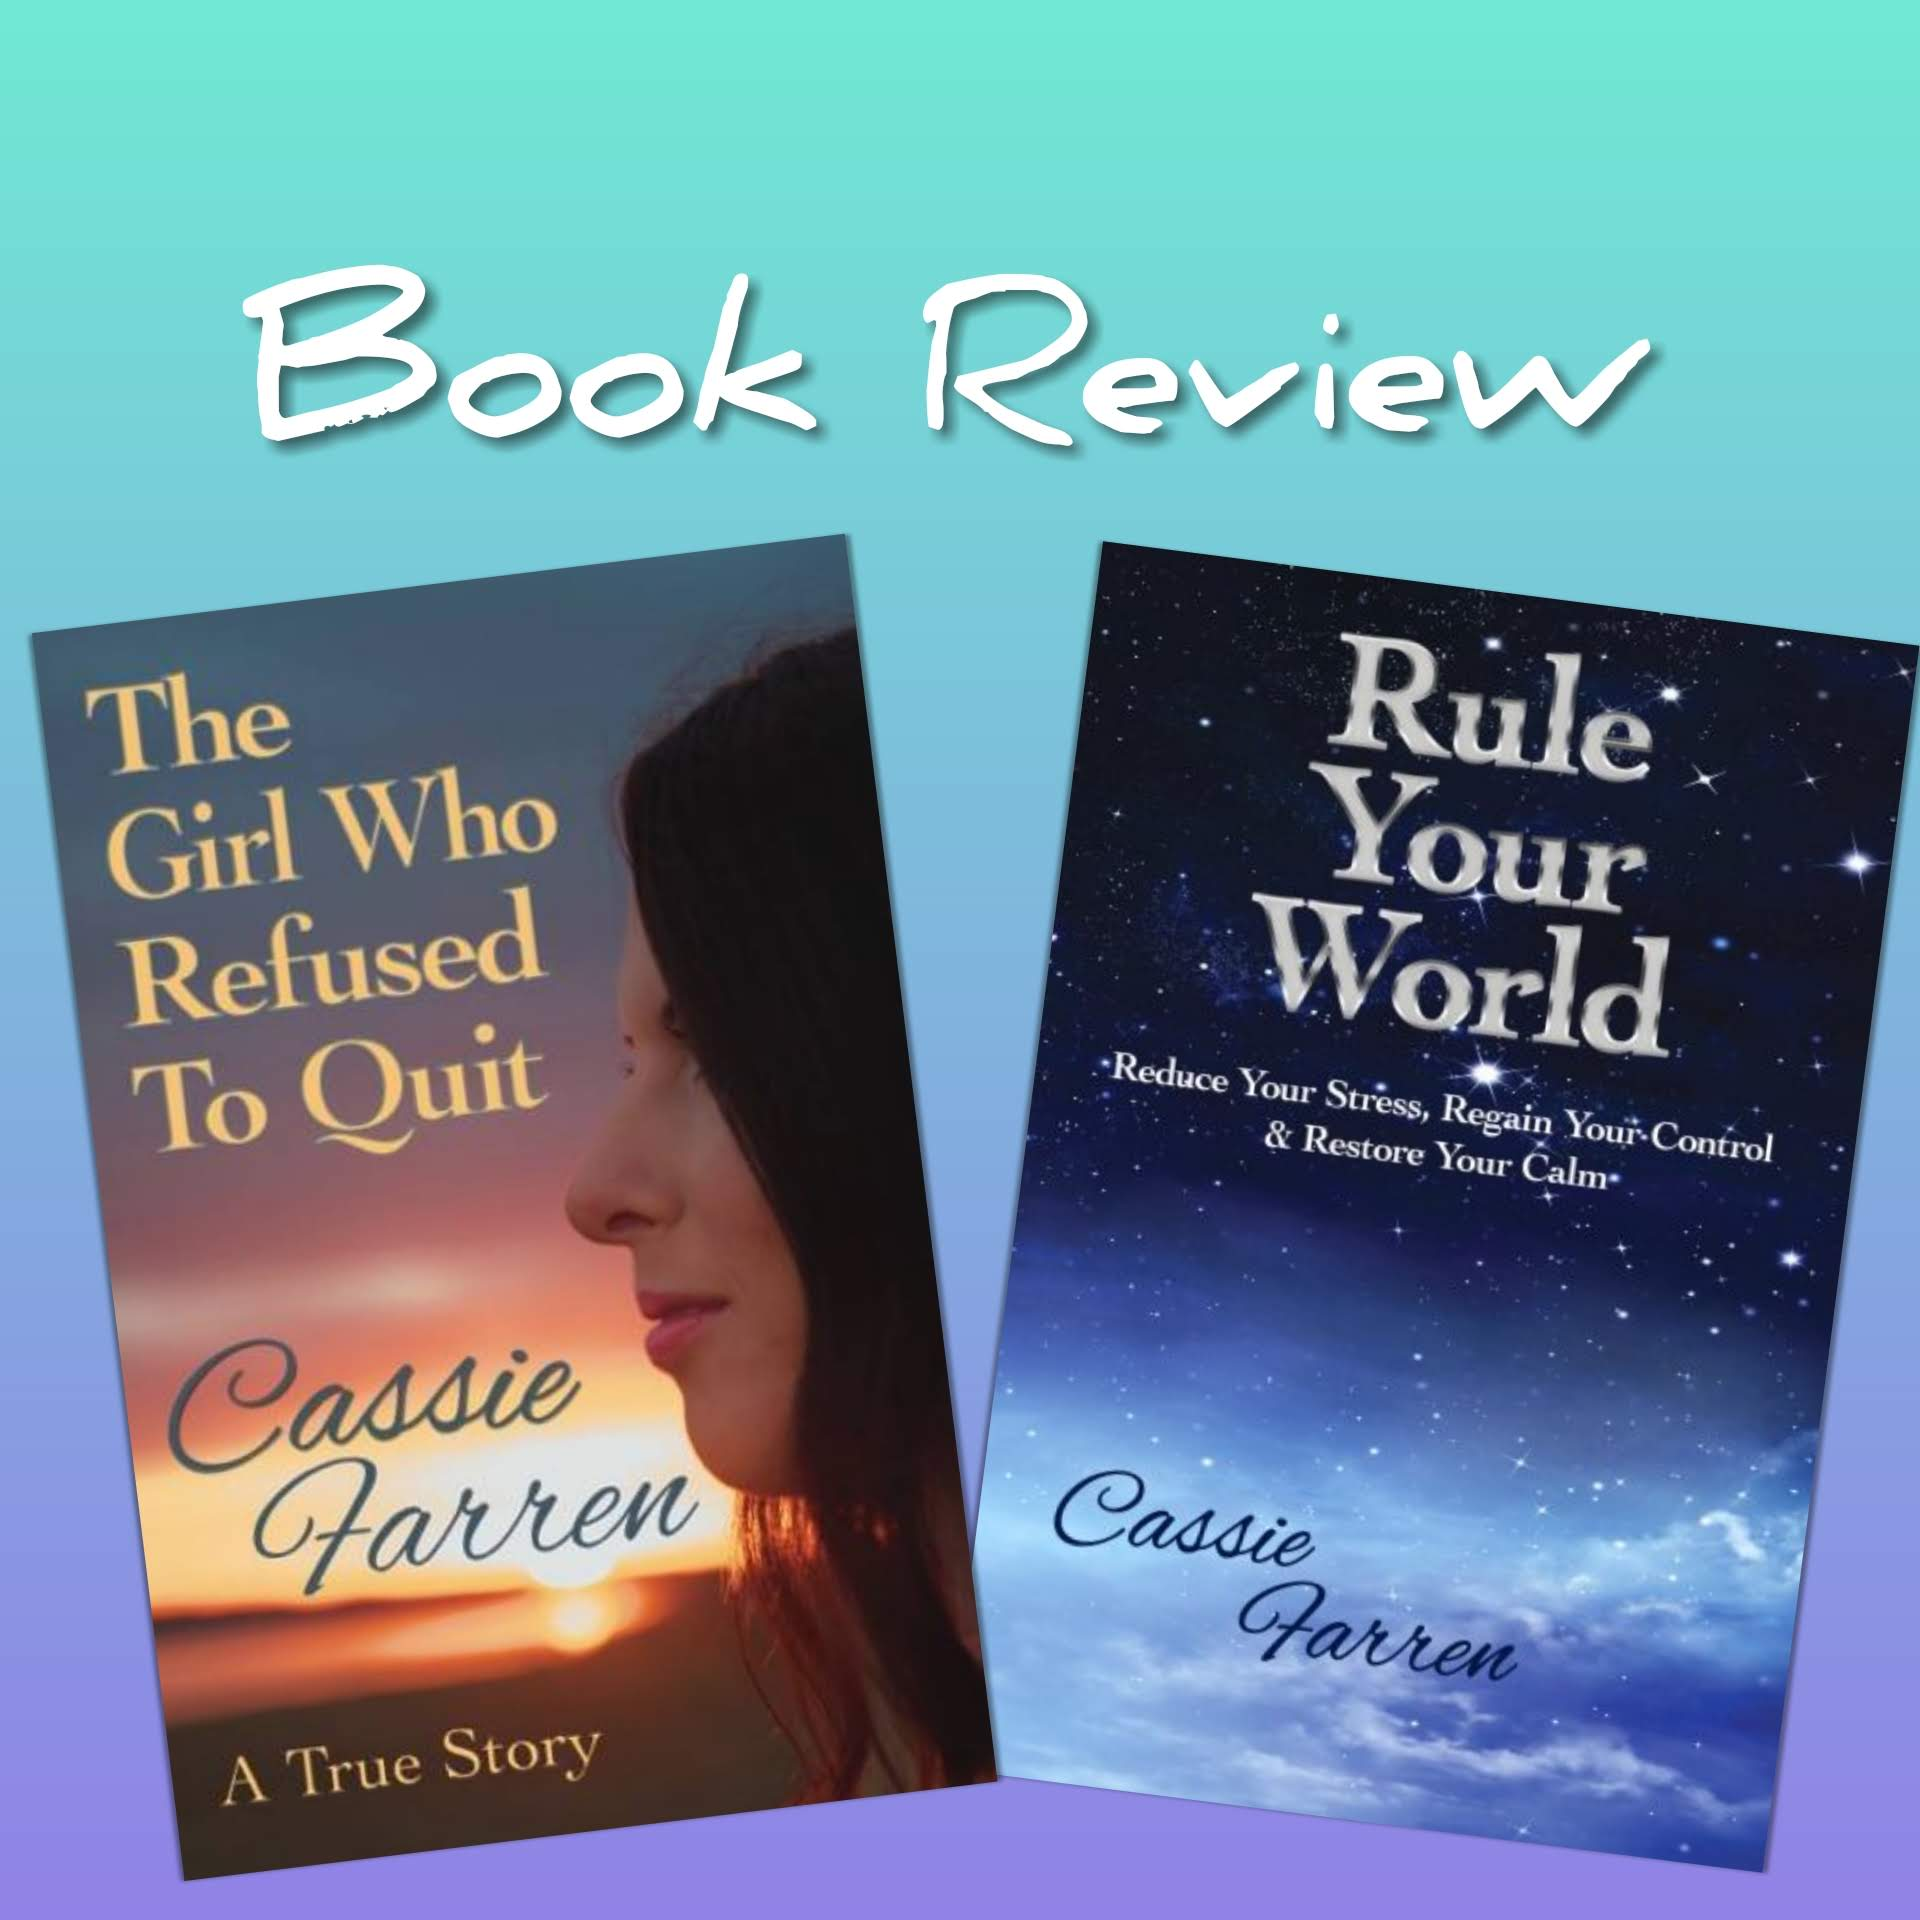 Book Review of Cassandra Farren's 'The Girl Who Refused To Quit' and 'Rule Your World'